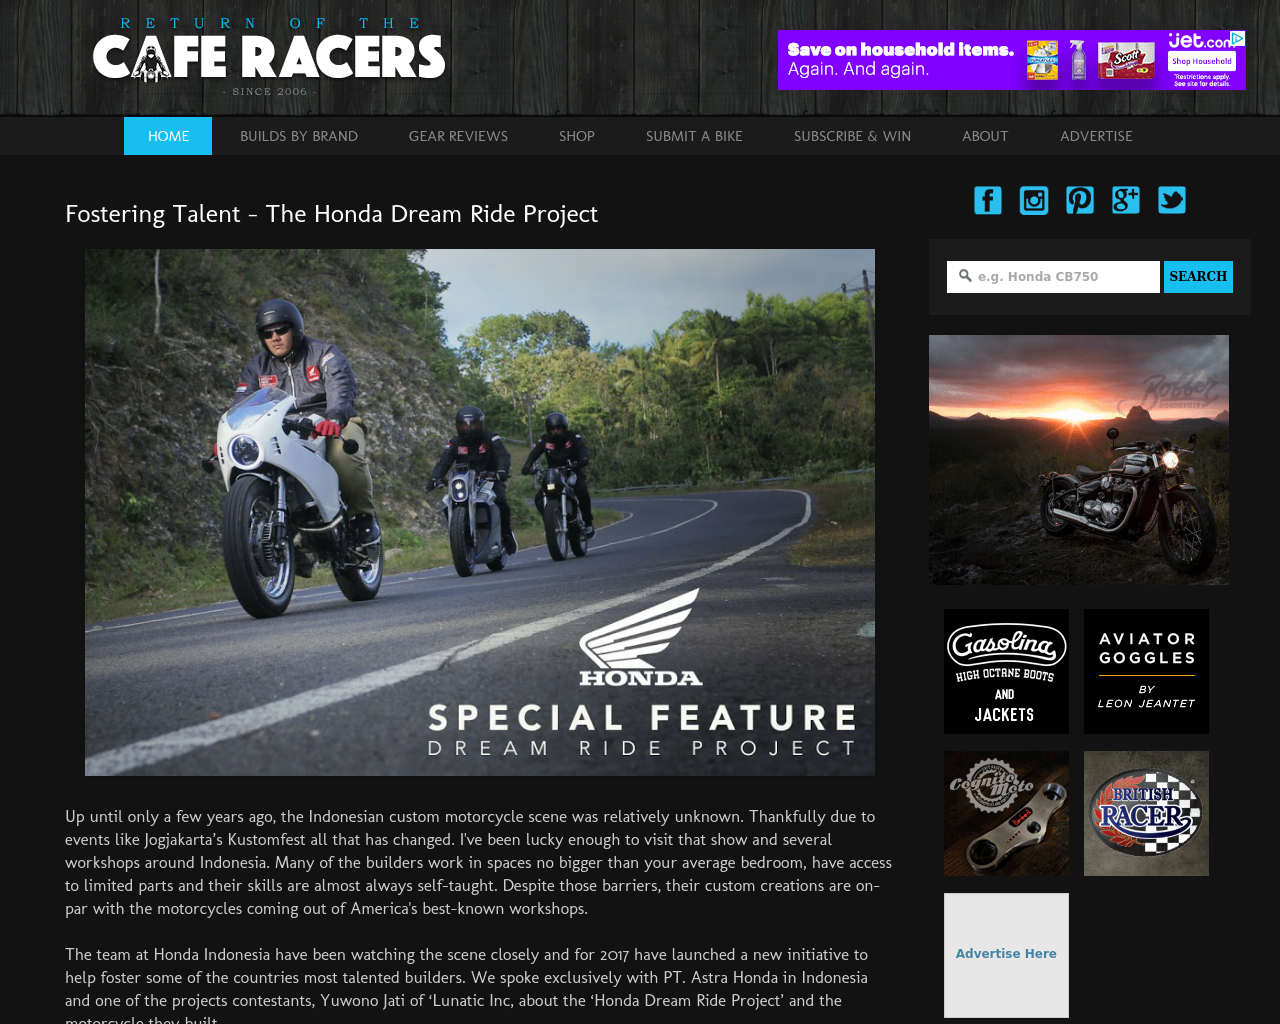 Return-Of-The-Cafe-Racers-Advertising-Reviews-Pricing